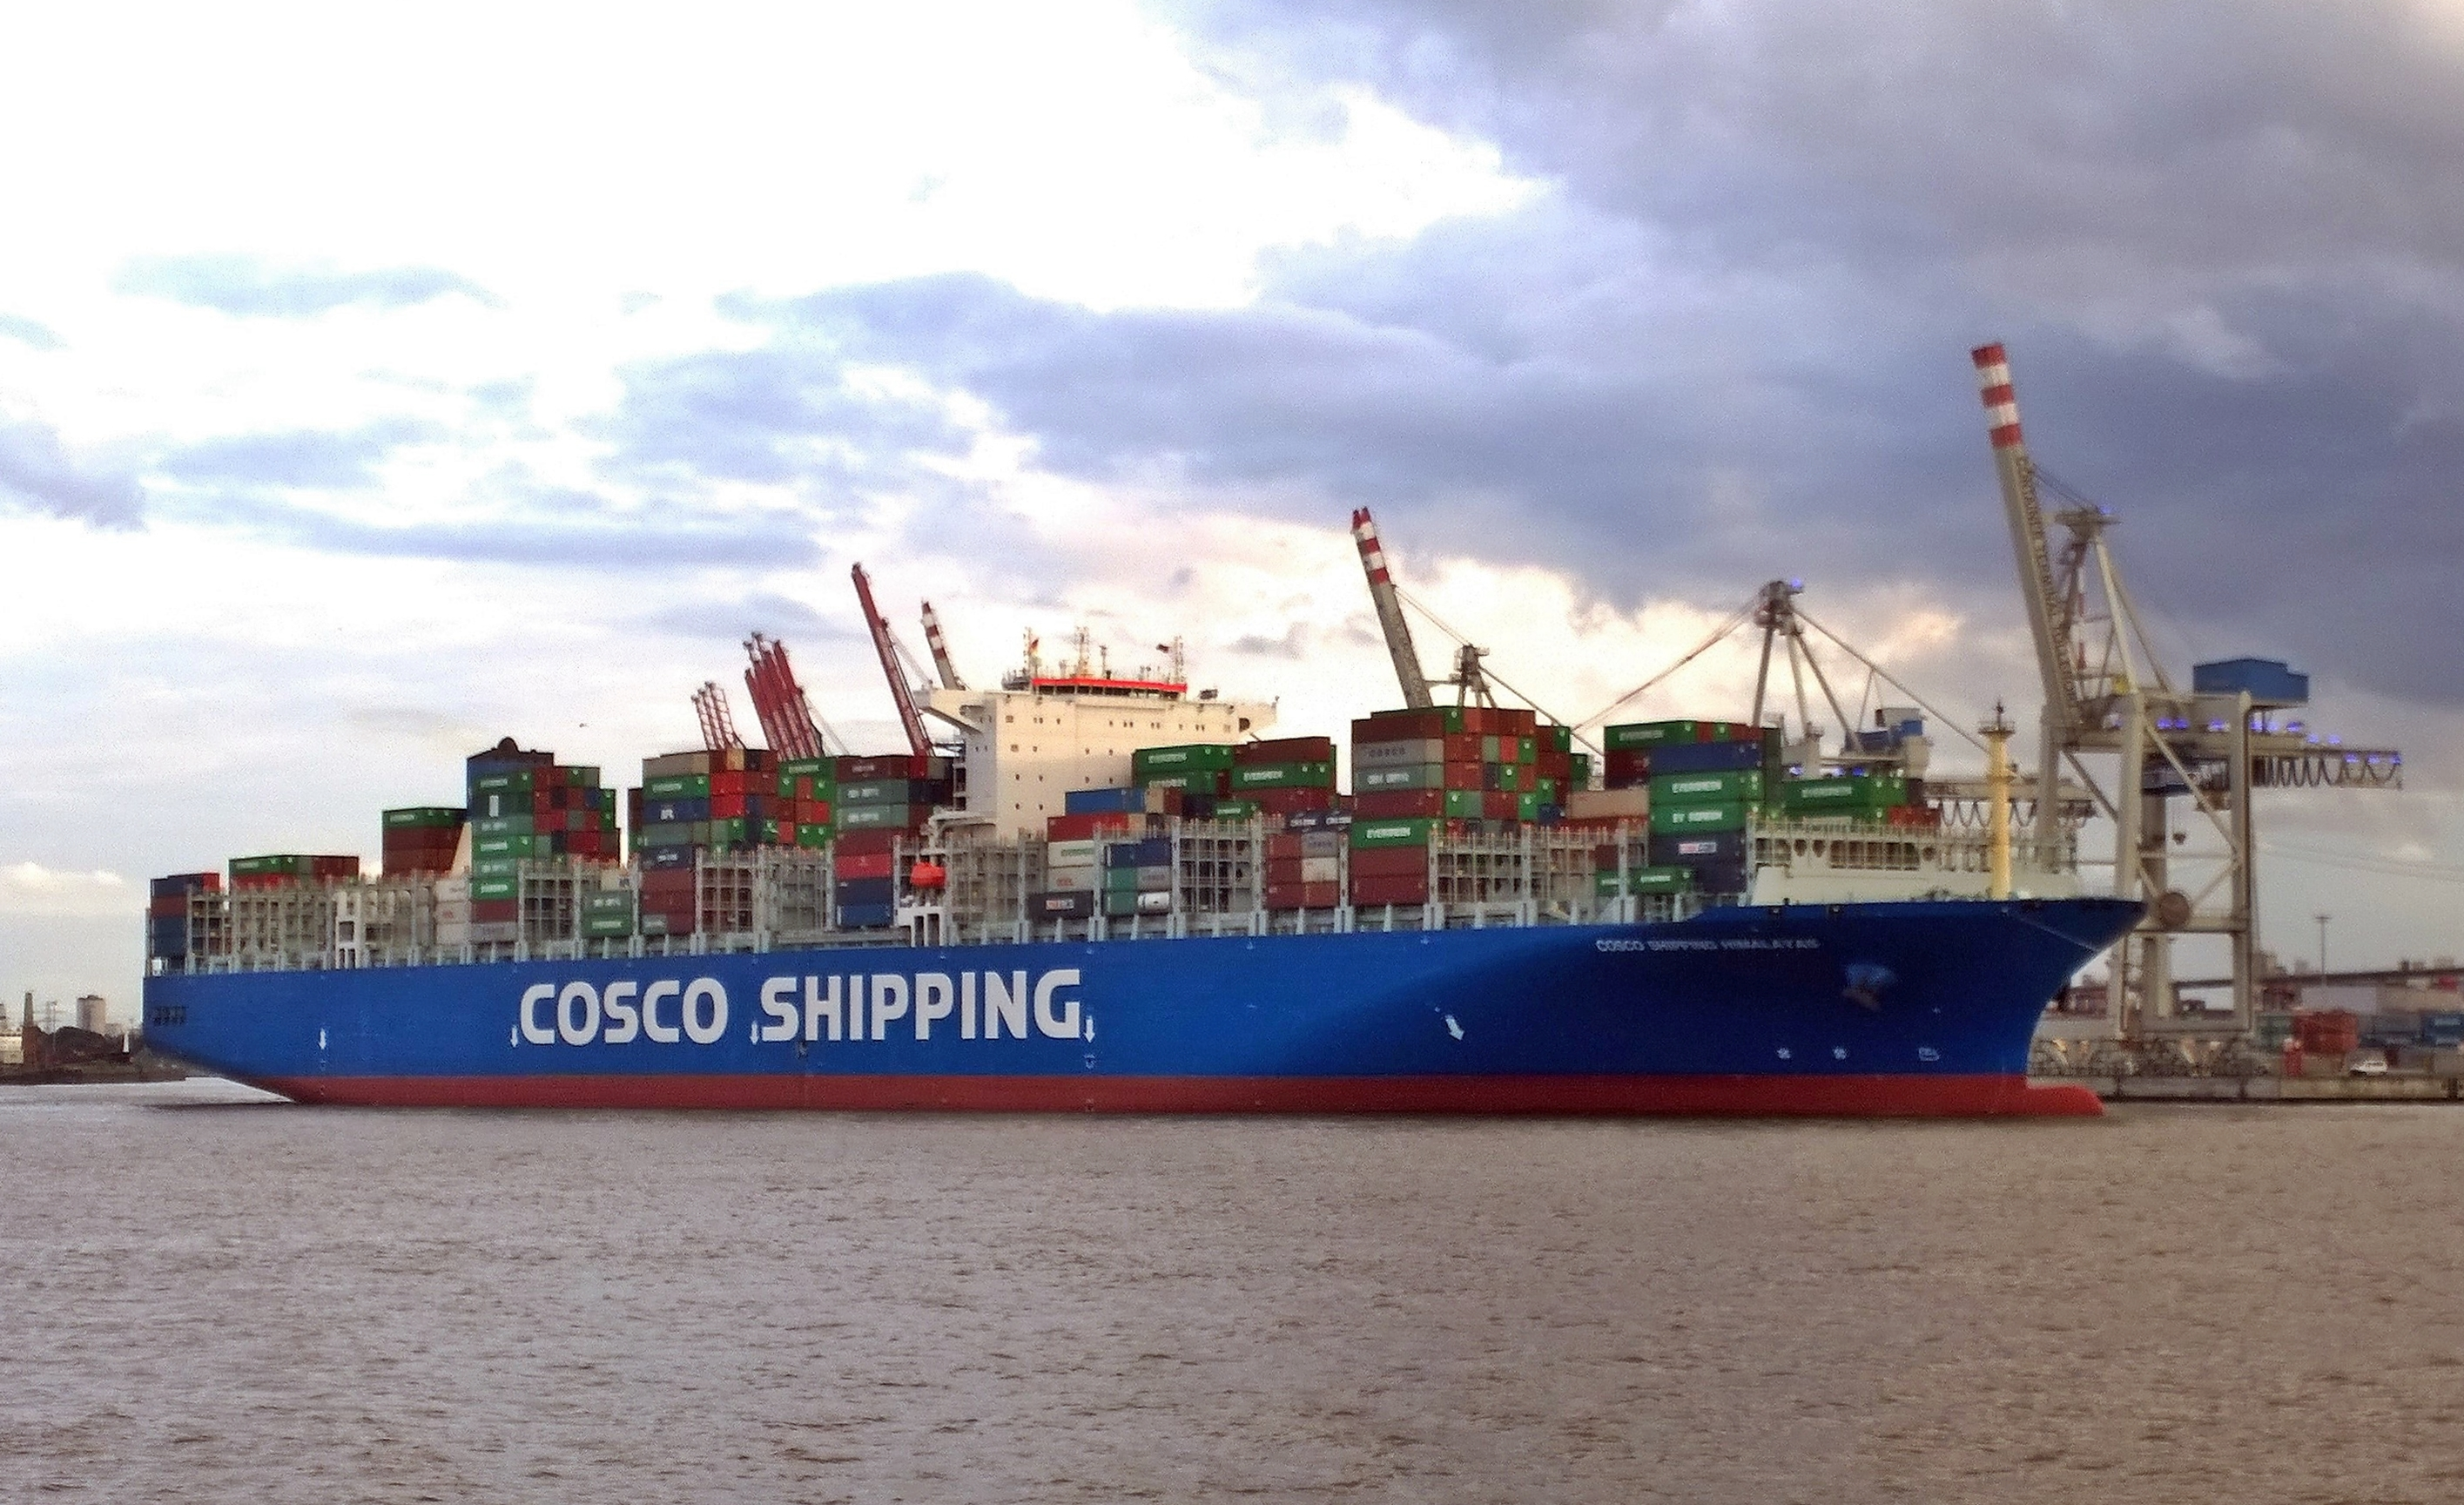 dateithe new container ship cosco shipping himalayas in